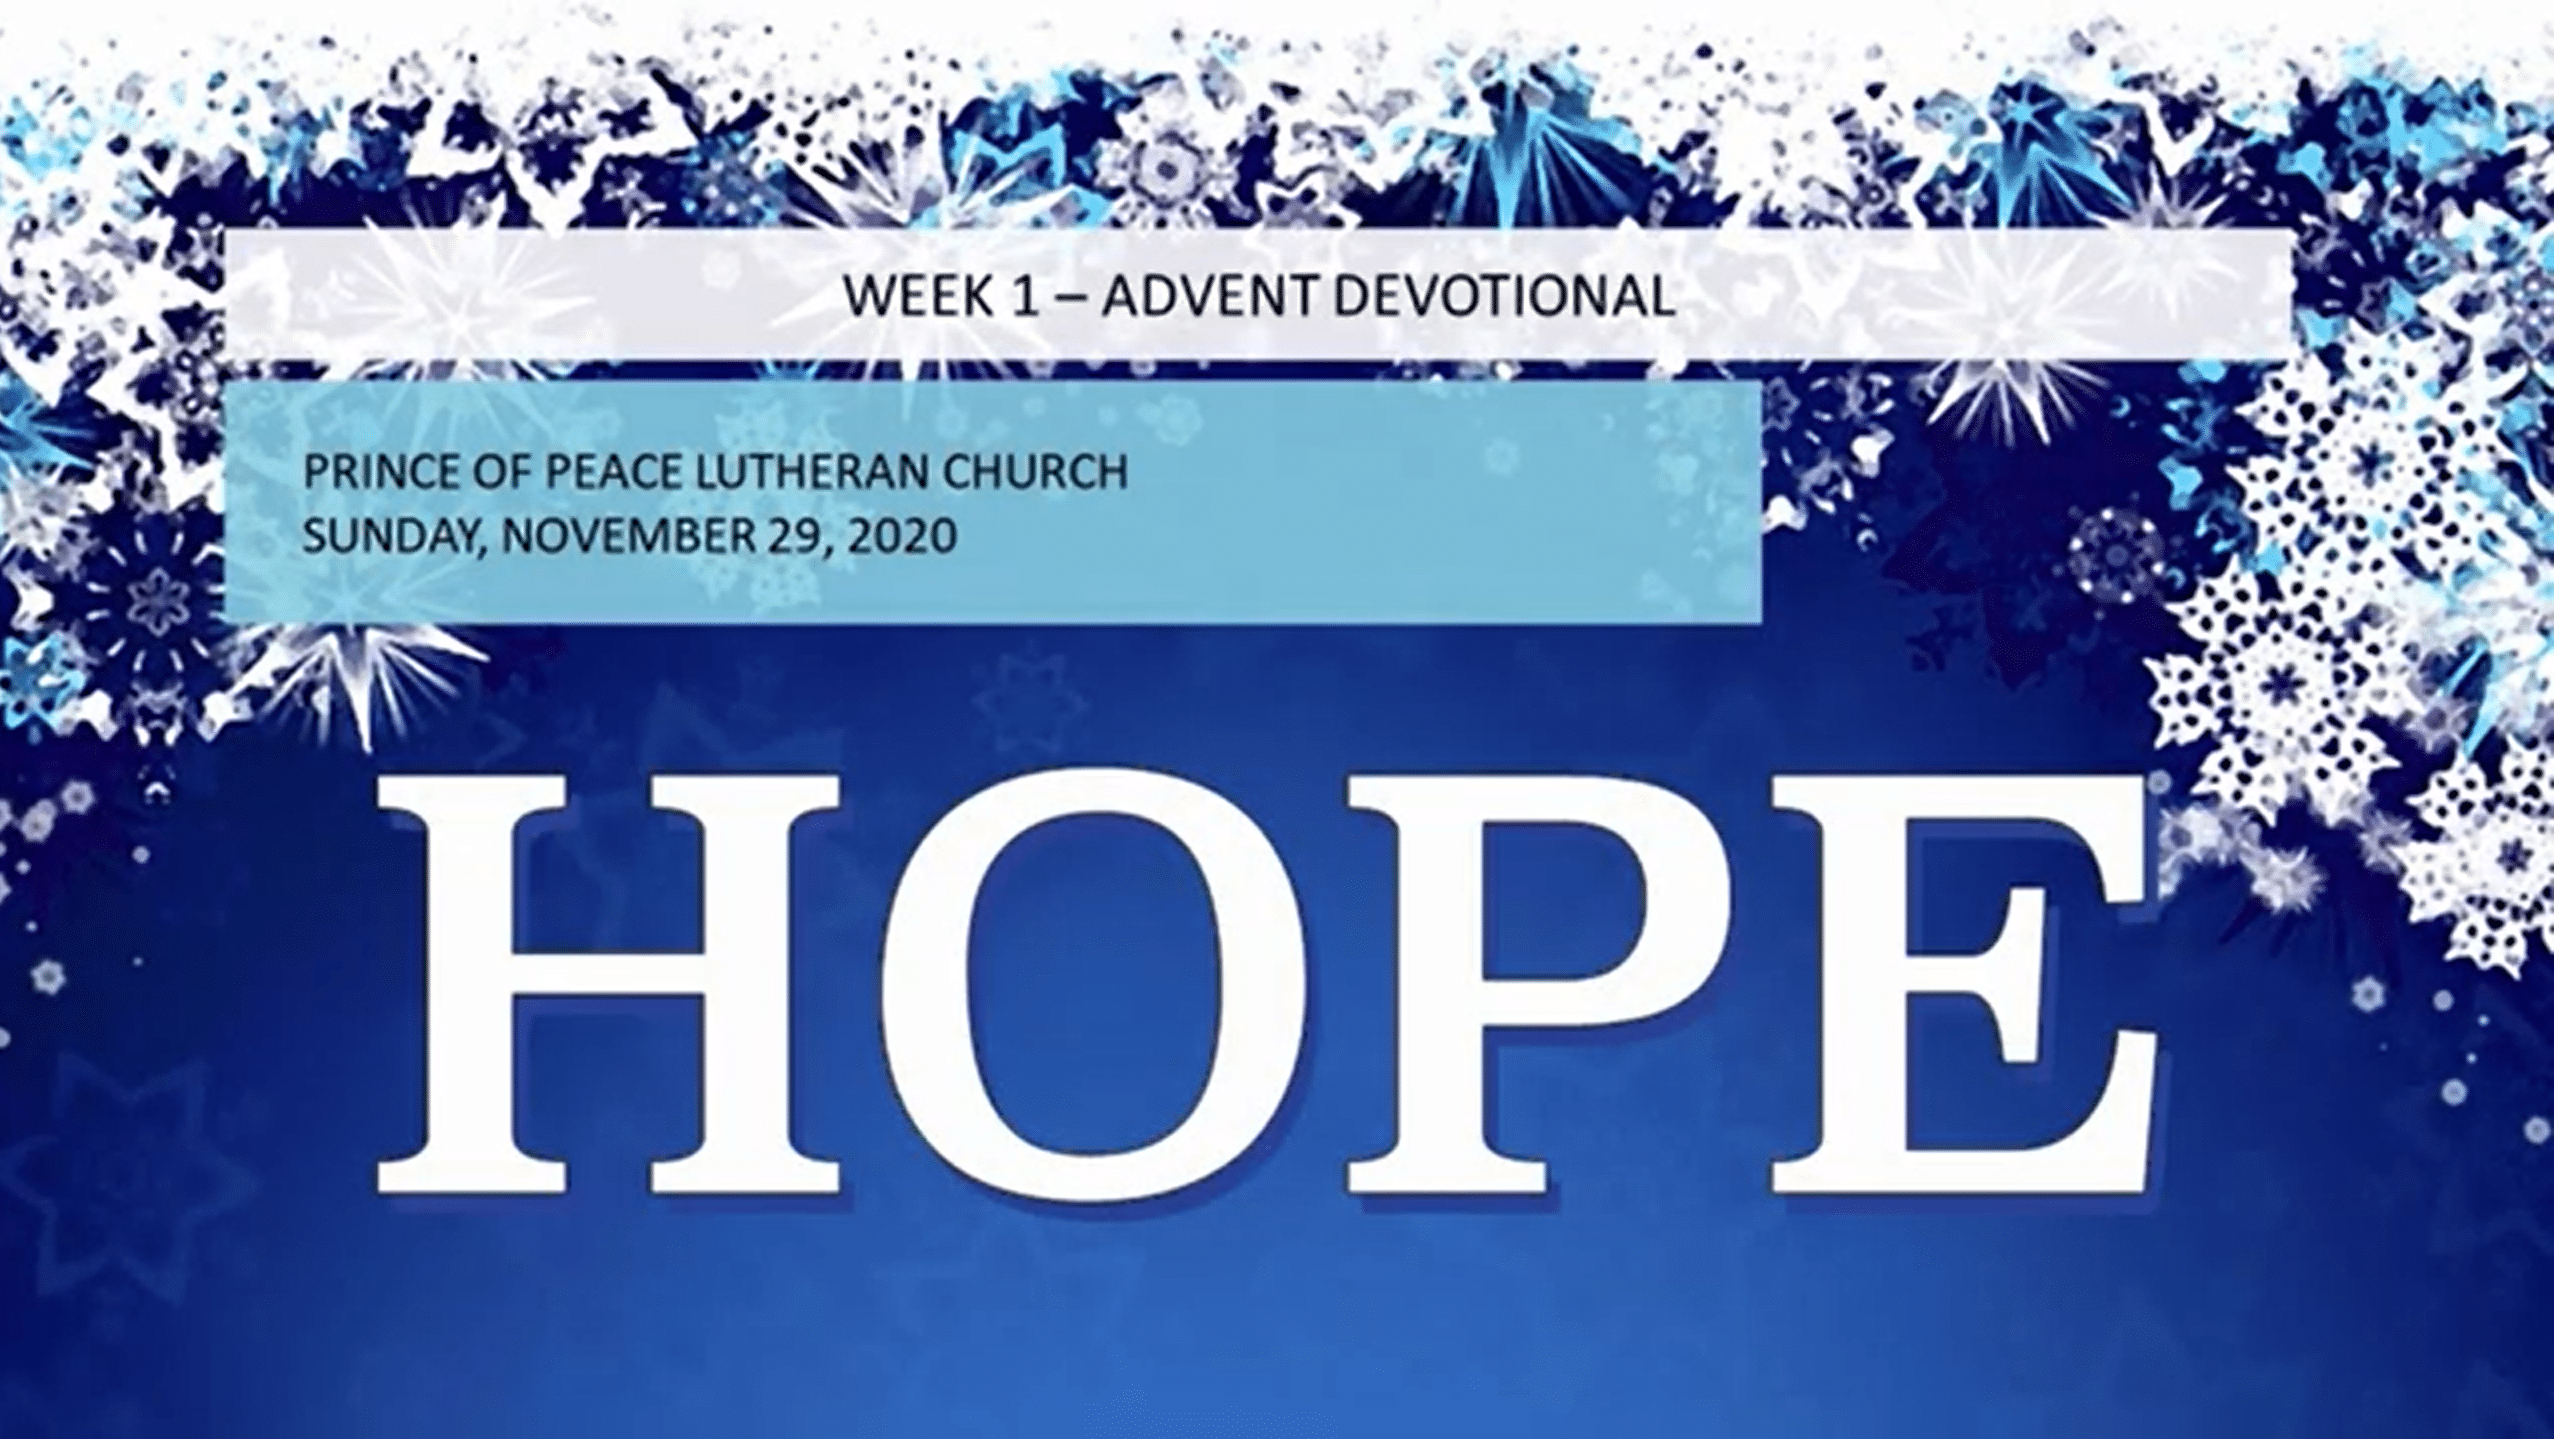 Don't miss out on the 2020 Advent Devotional Calendar!